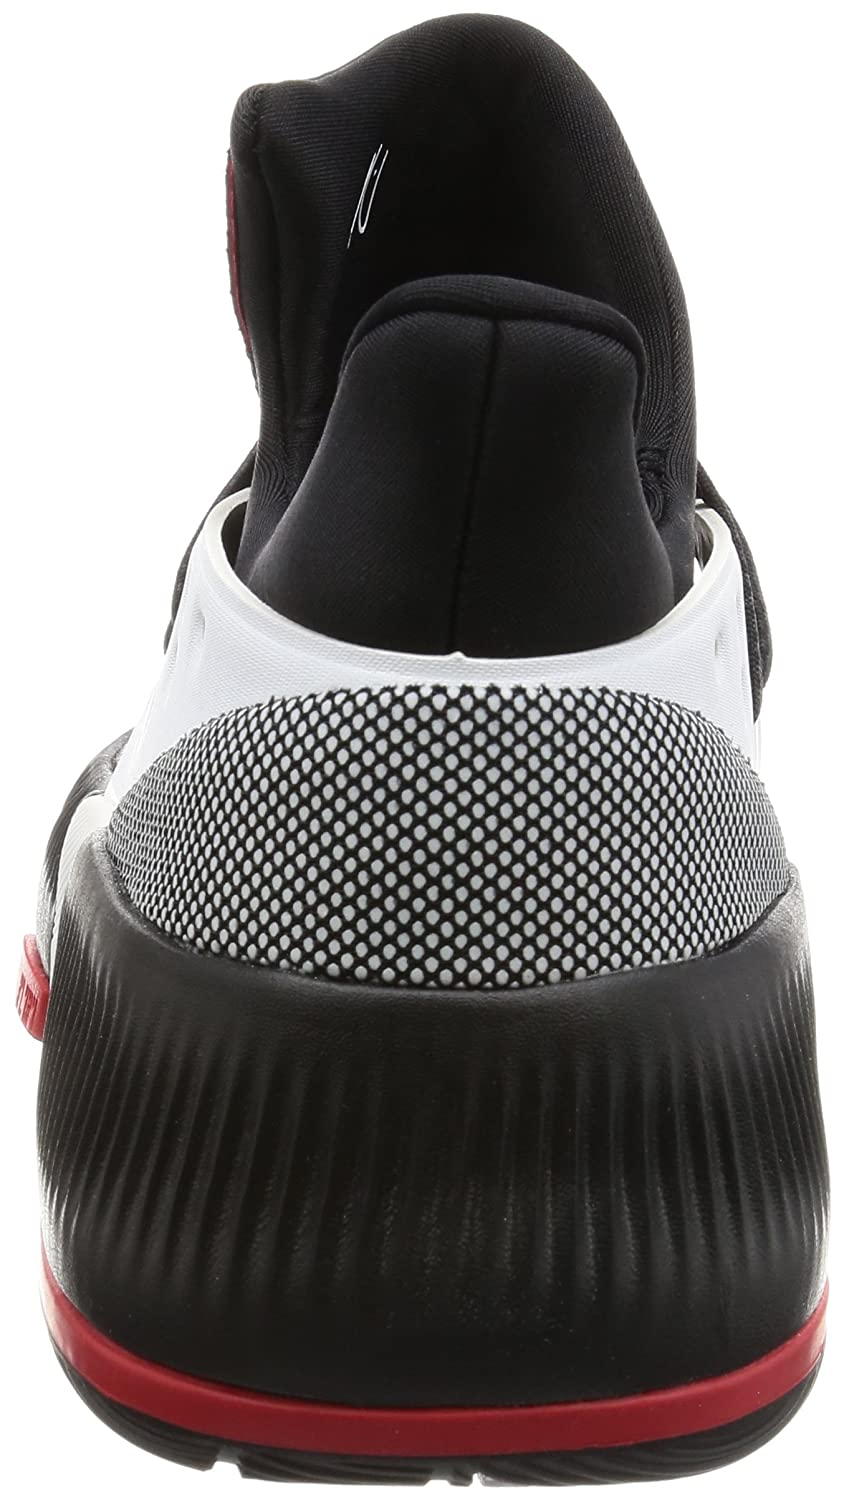 best authentic e1d99 e6d2e Adidas D Lillard 3, Scarpe da Basket Uomo, Nero (NegbasNegutiFtwbla), 49  EU Amazon.it Scarpe e borse